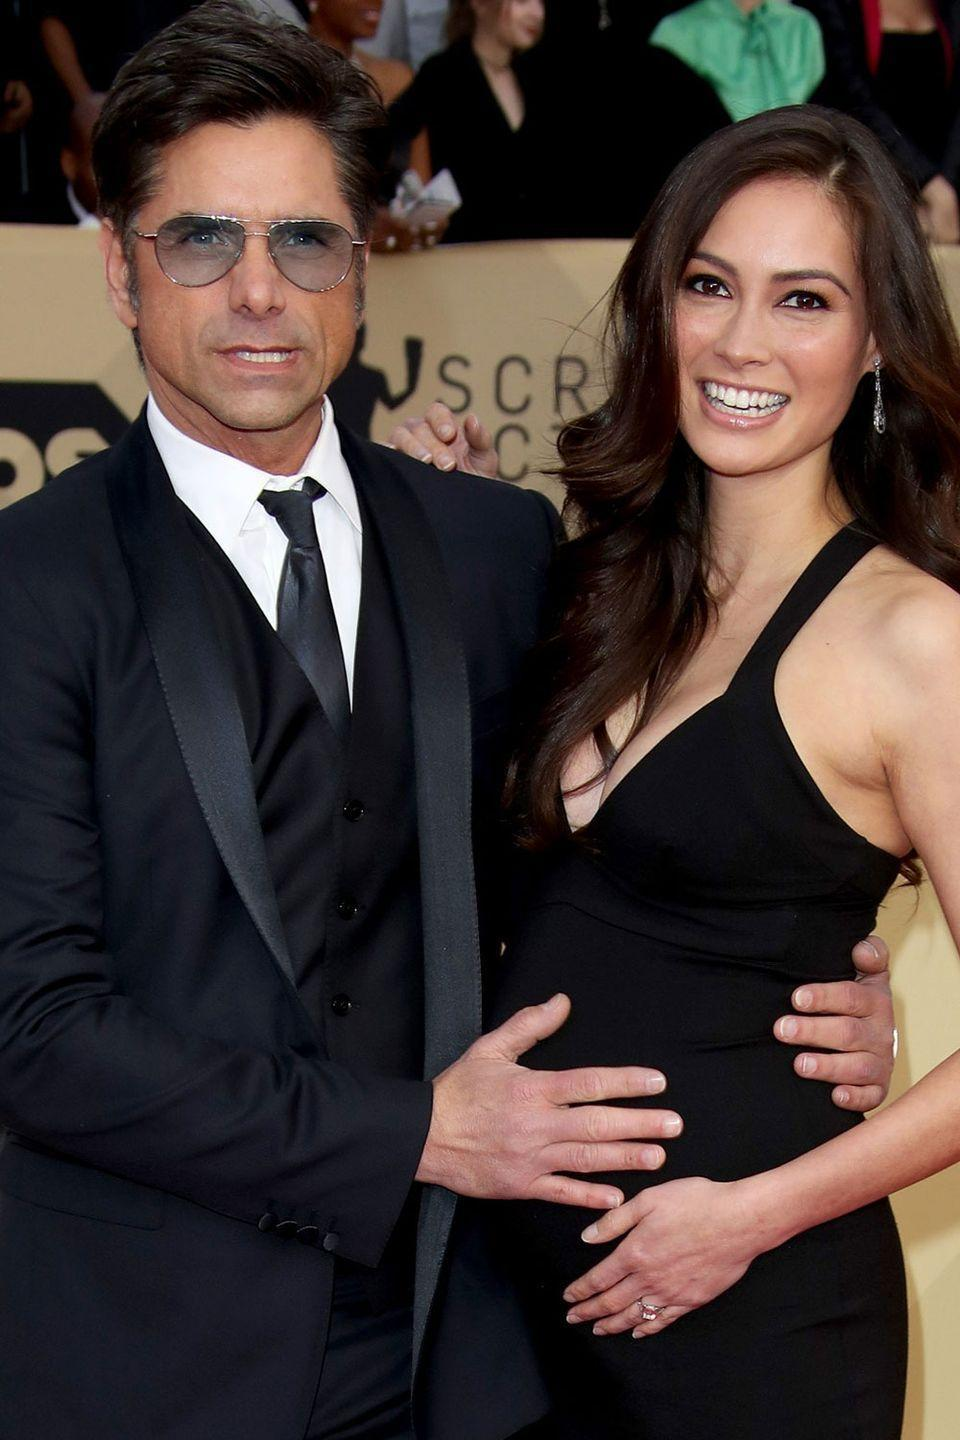 <p>He's barely aged since the '80s and she's got the same dark features he does. She's not Lori Loughlin, though, and we all just have to accept that. </p>